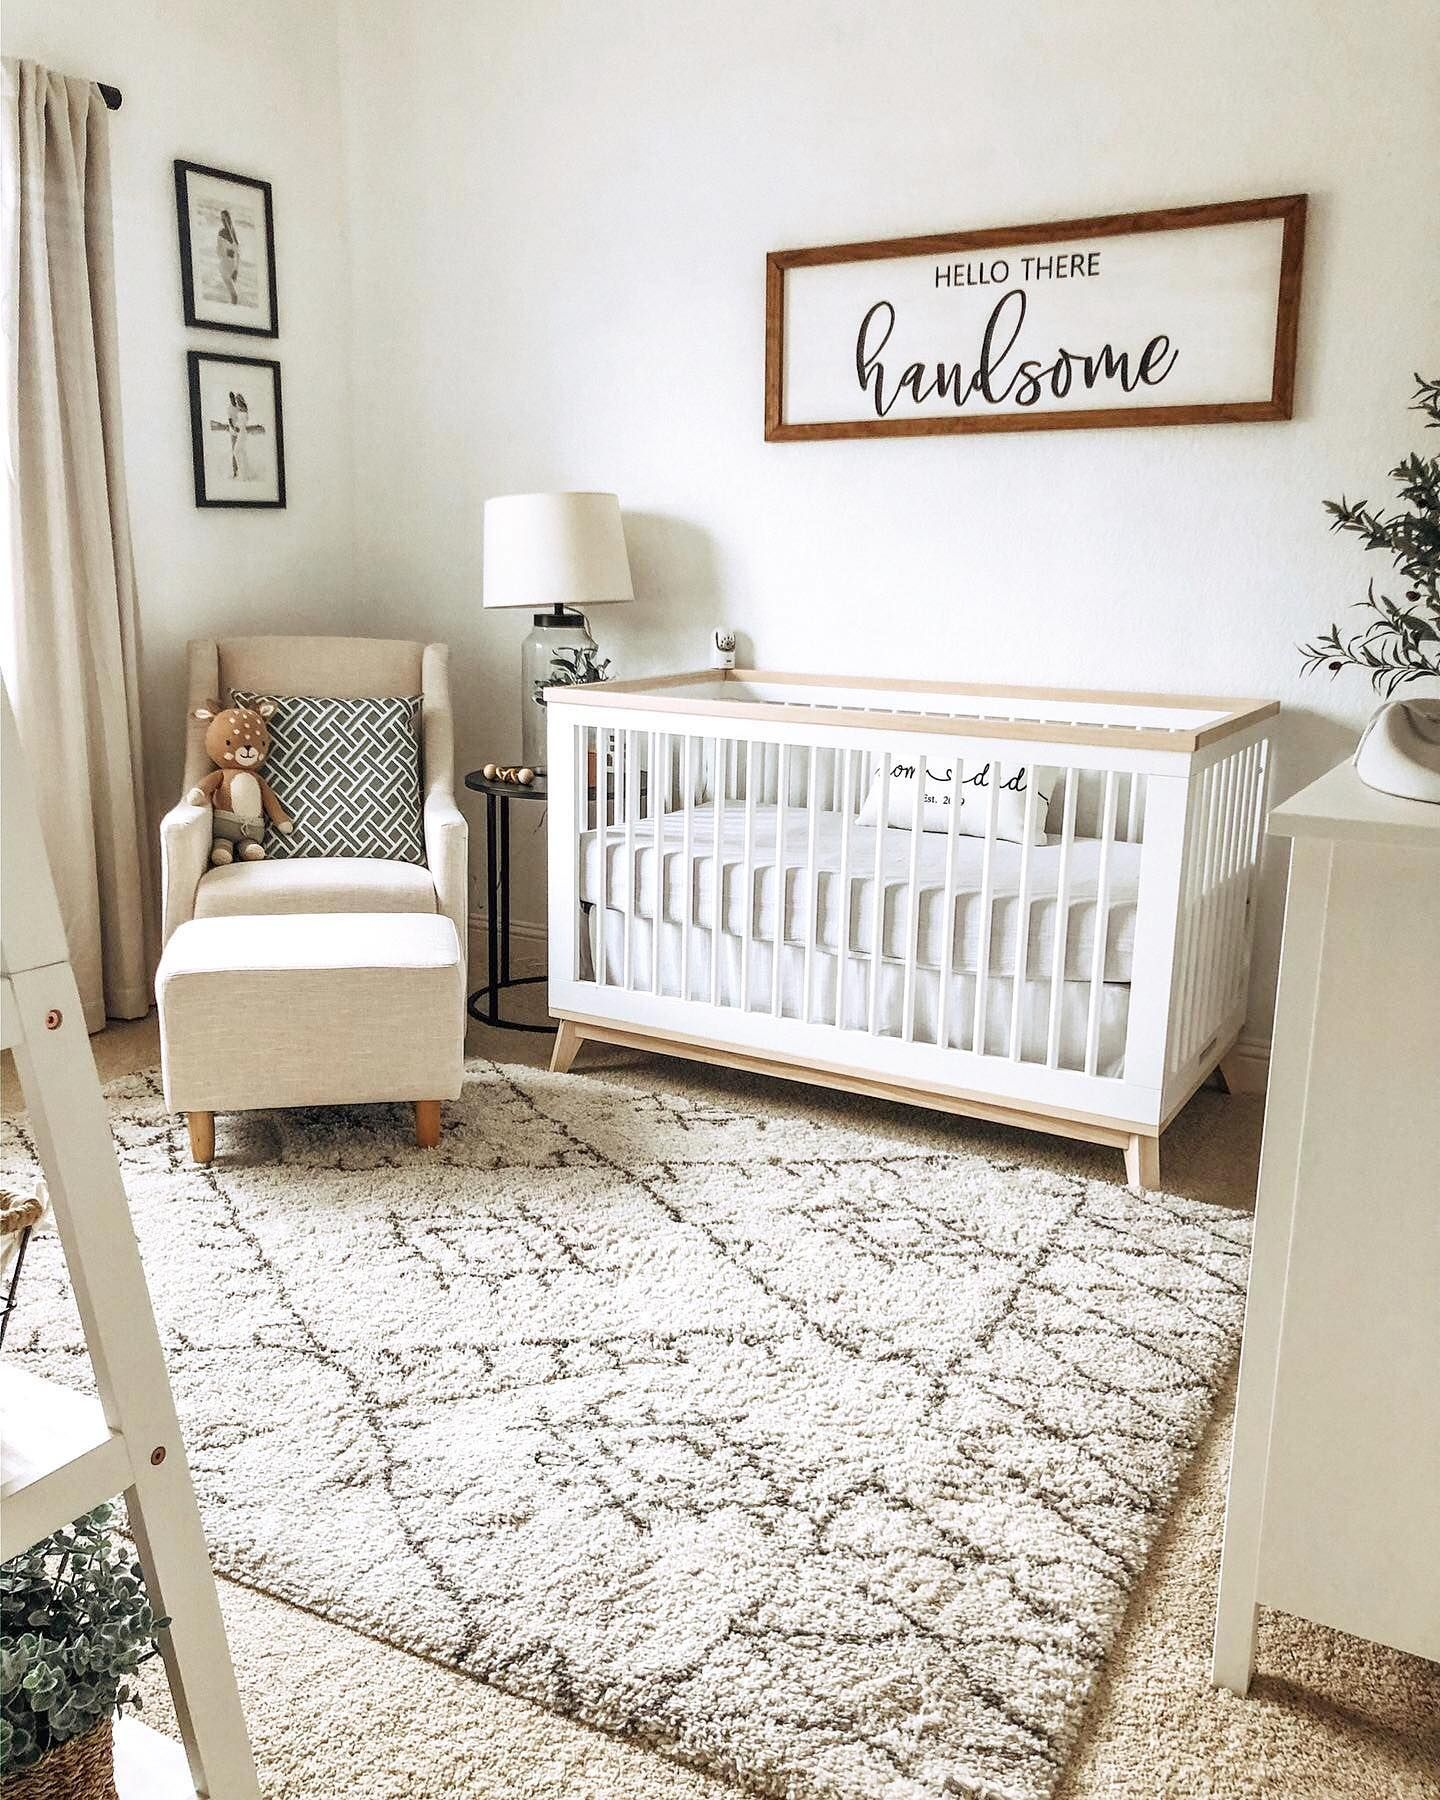 Neutral Toned Baby Boy Nursery with Hello Handsome Sign in 26